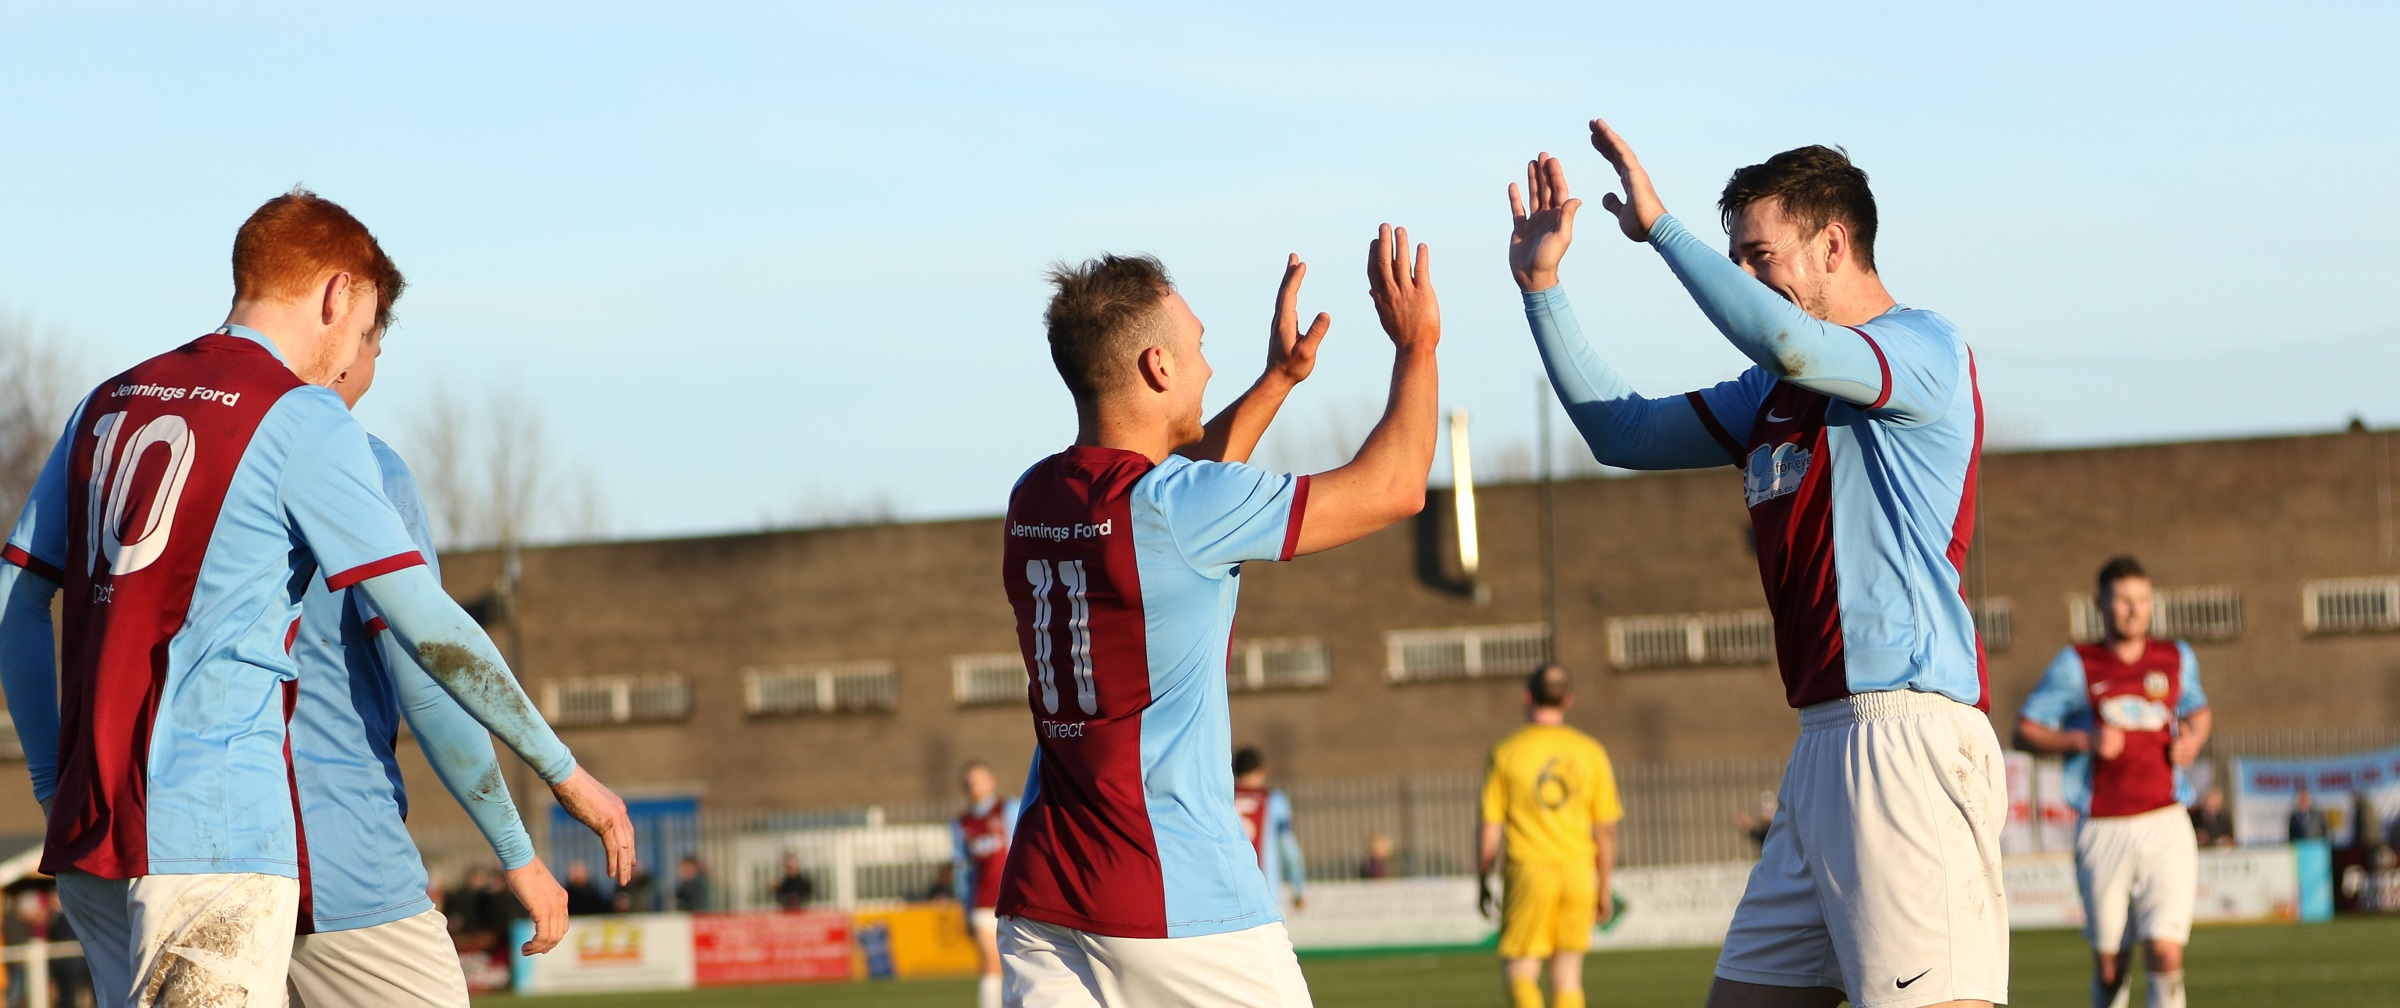 South Shields 5-0 West Auckland Town: Hosts rampant as Foley scores four again